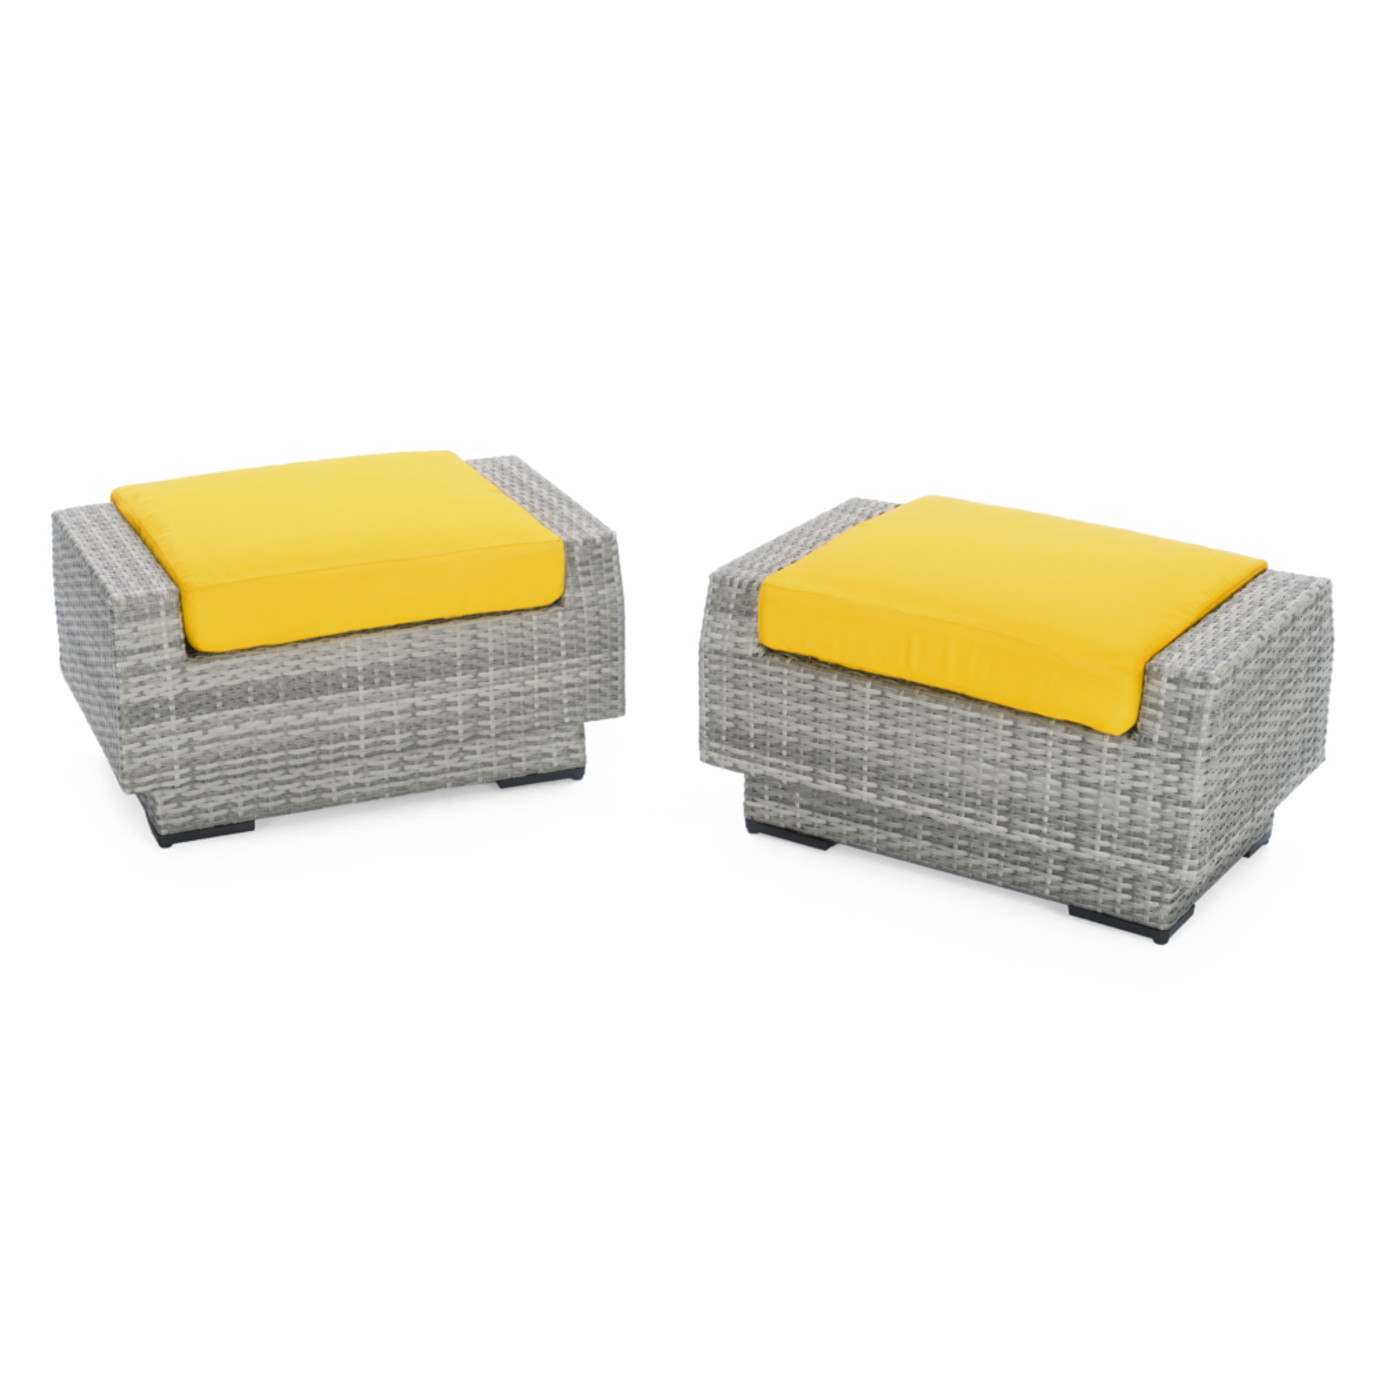 Cannes™ Club Ottomans - Sunflower Yellow